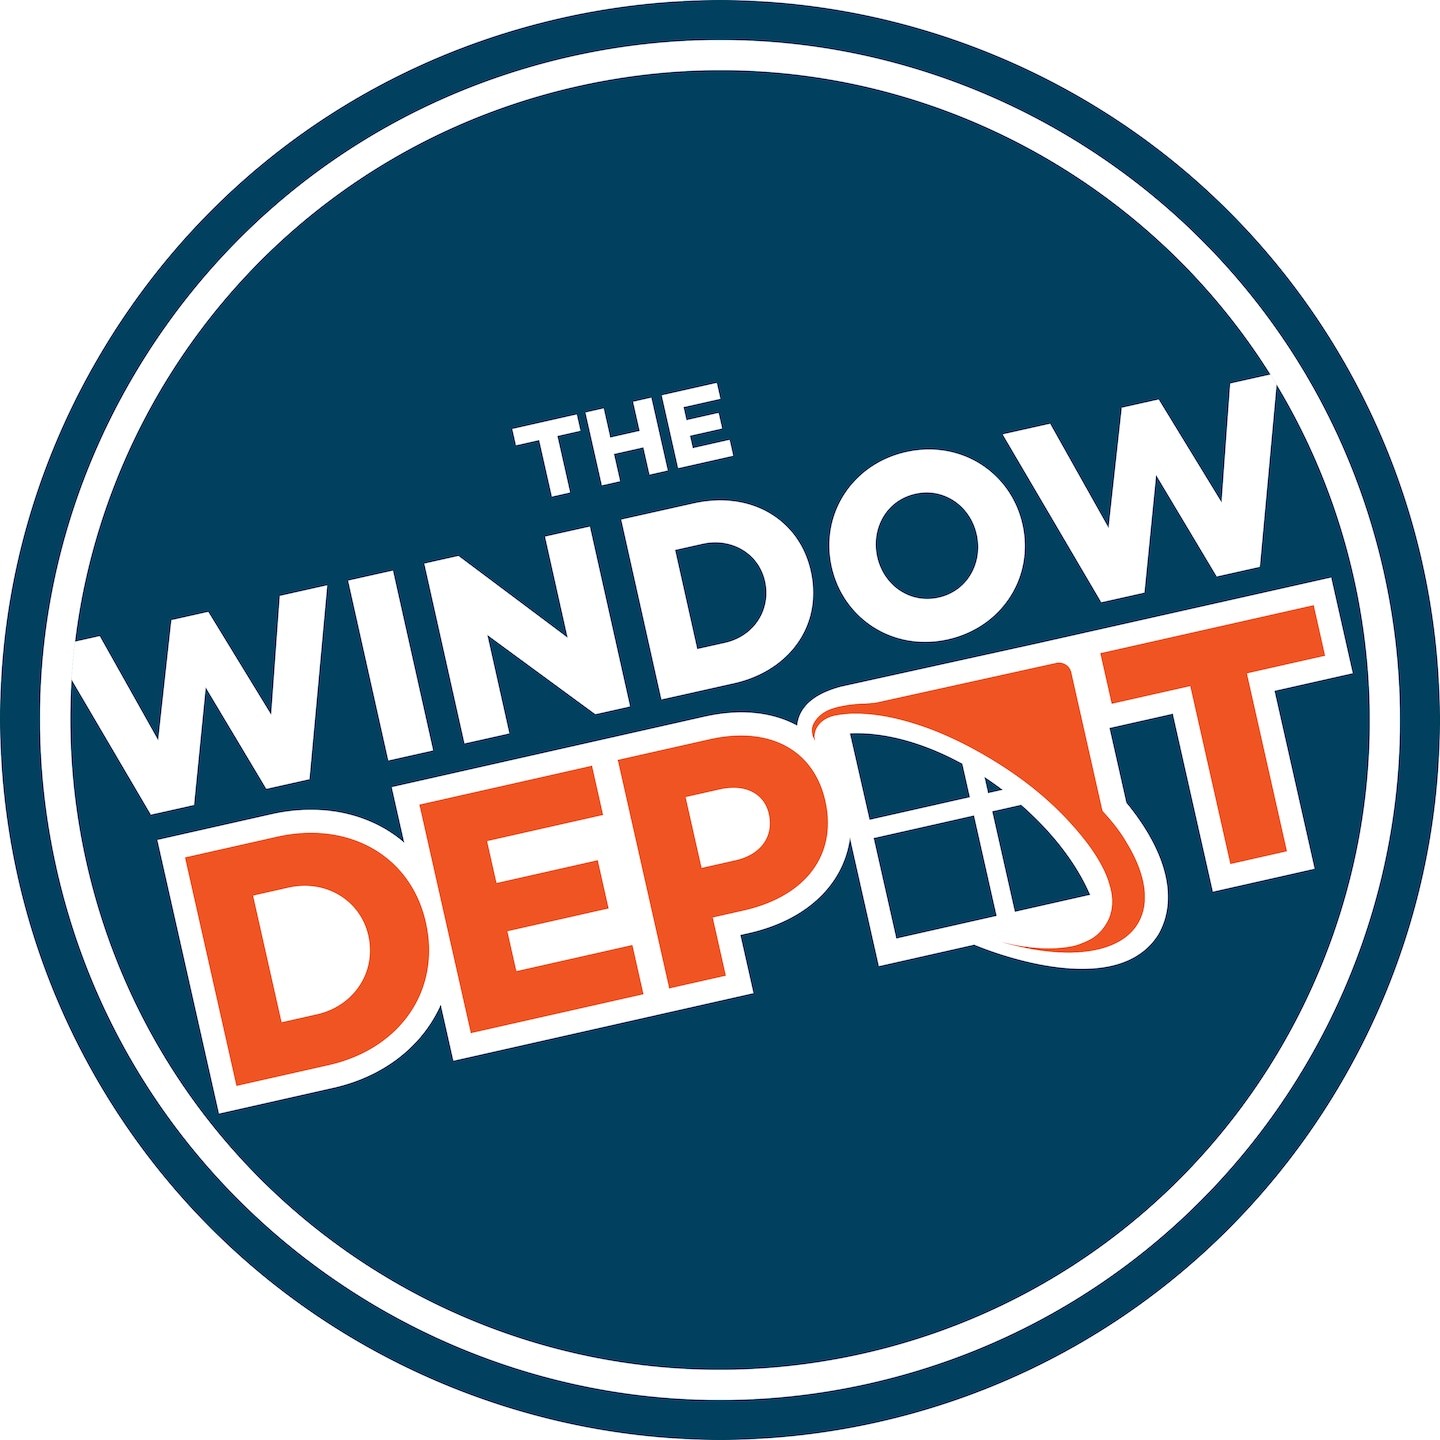 The Window Depot LLC